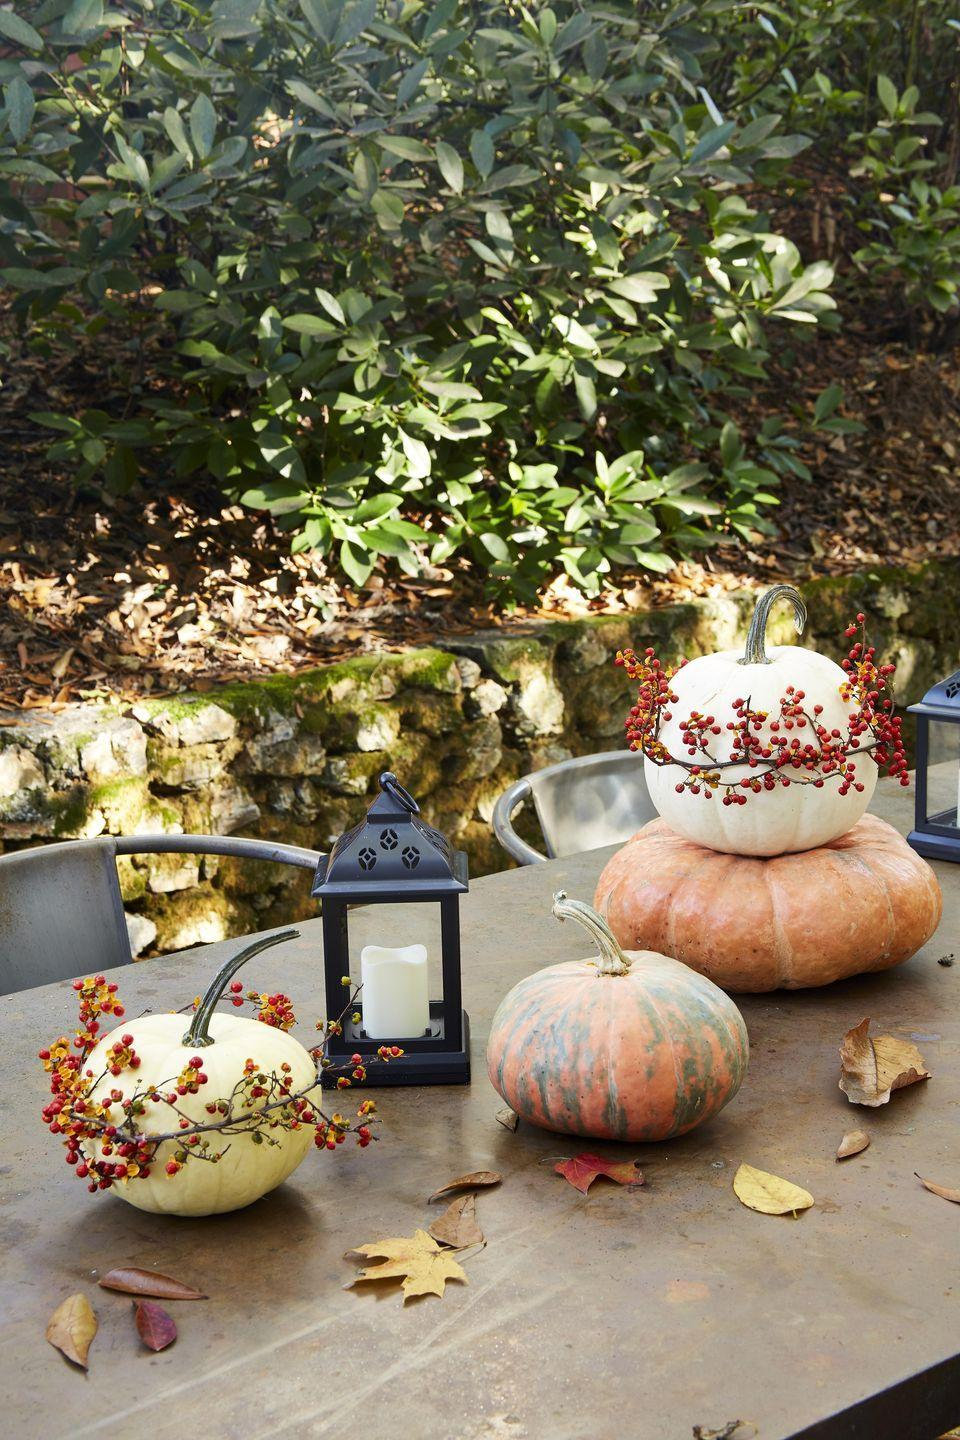 <p>This simple craft, which is perfect for decorating your fall table or front porch, only takes three supplies and just a few minutes to make. If you can't find bittersweet vine, try using grapevine and attaching berries with hot glue.</p><p><strong>To make: </strong>Wrap white pumpkins with bittersweet vine, holding it in place with t-pins and hot glue.</p>